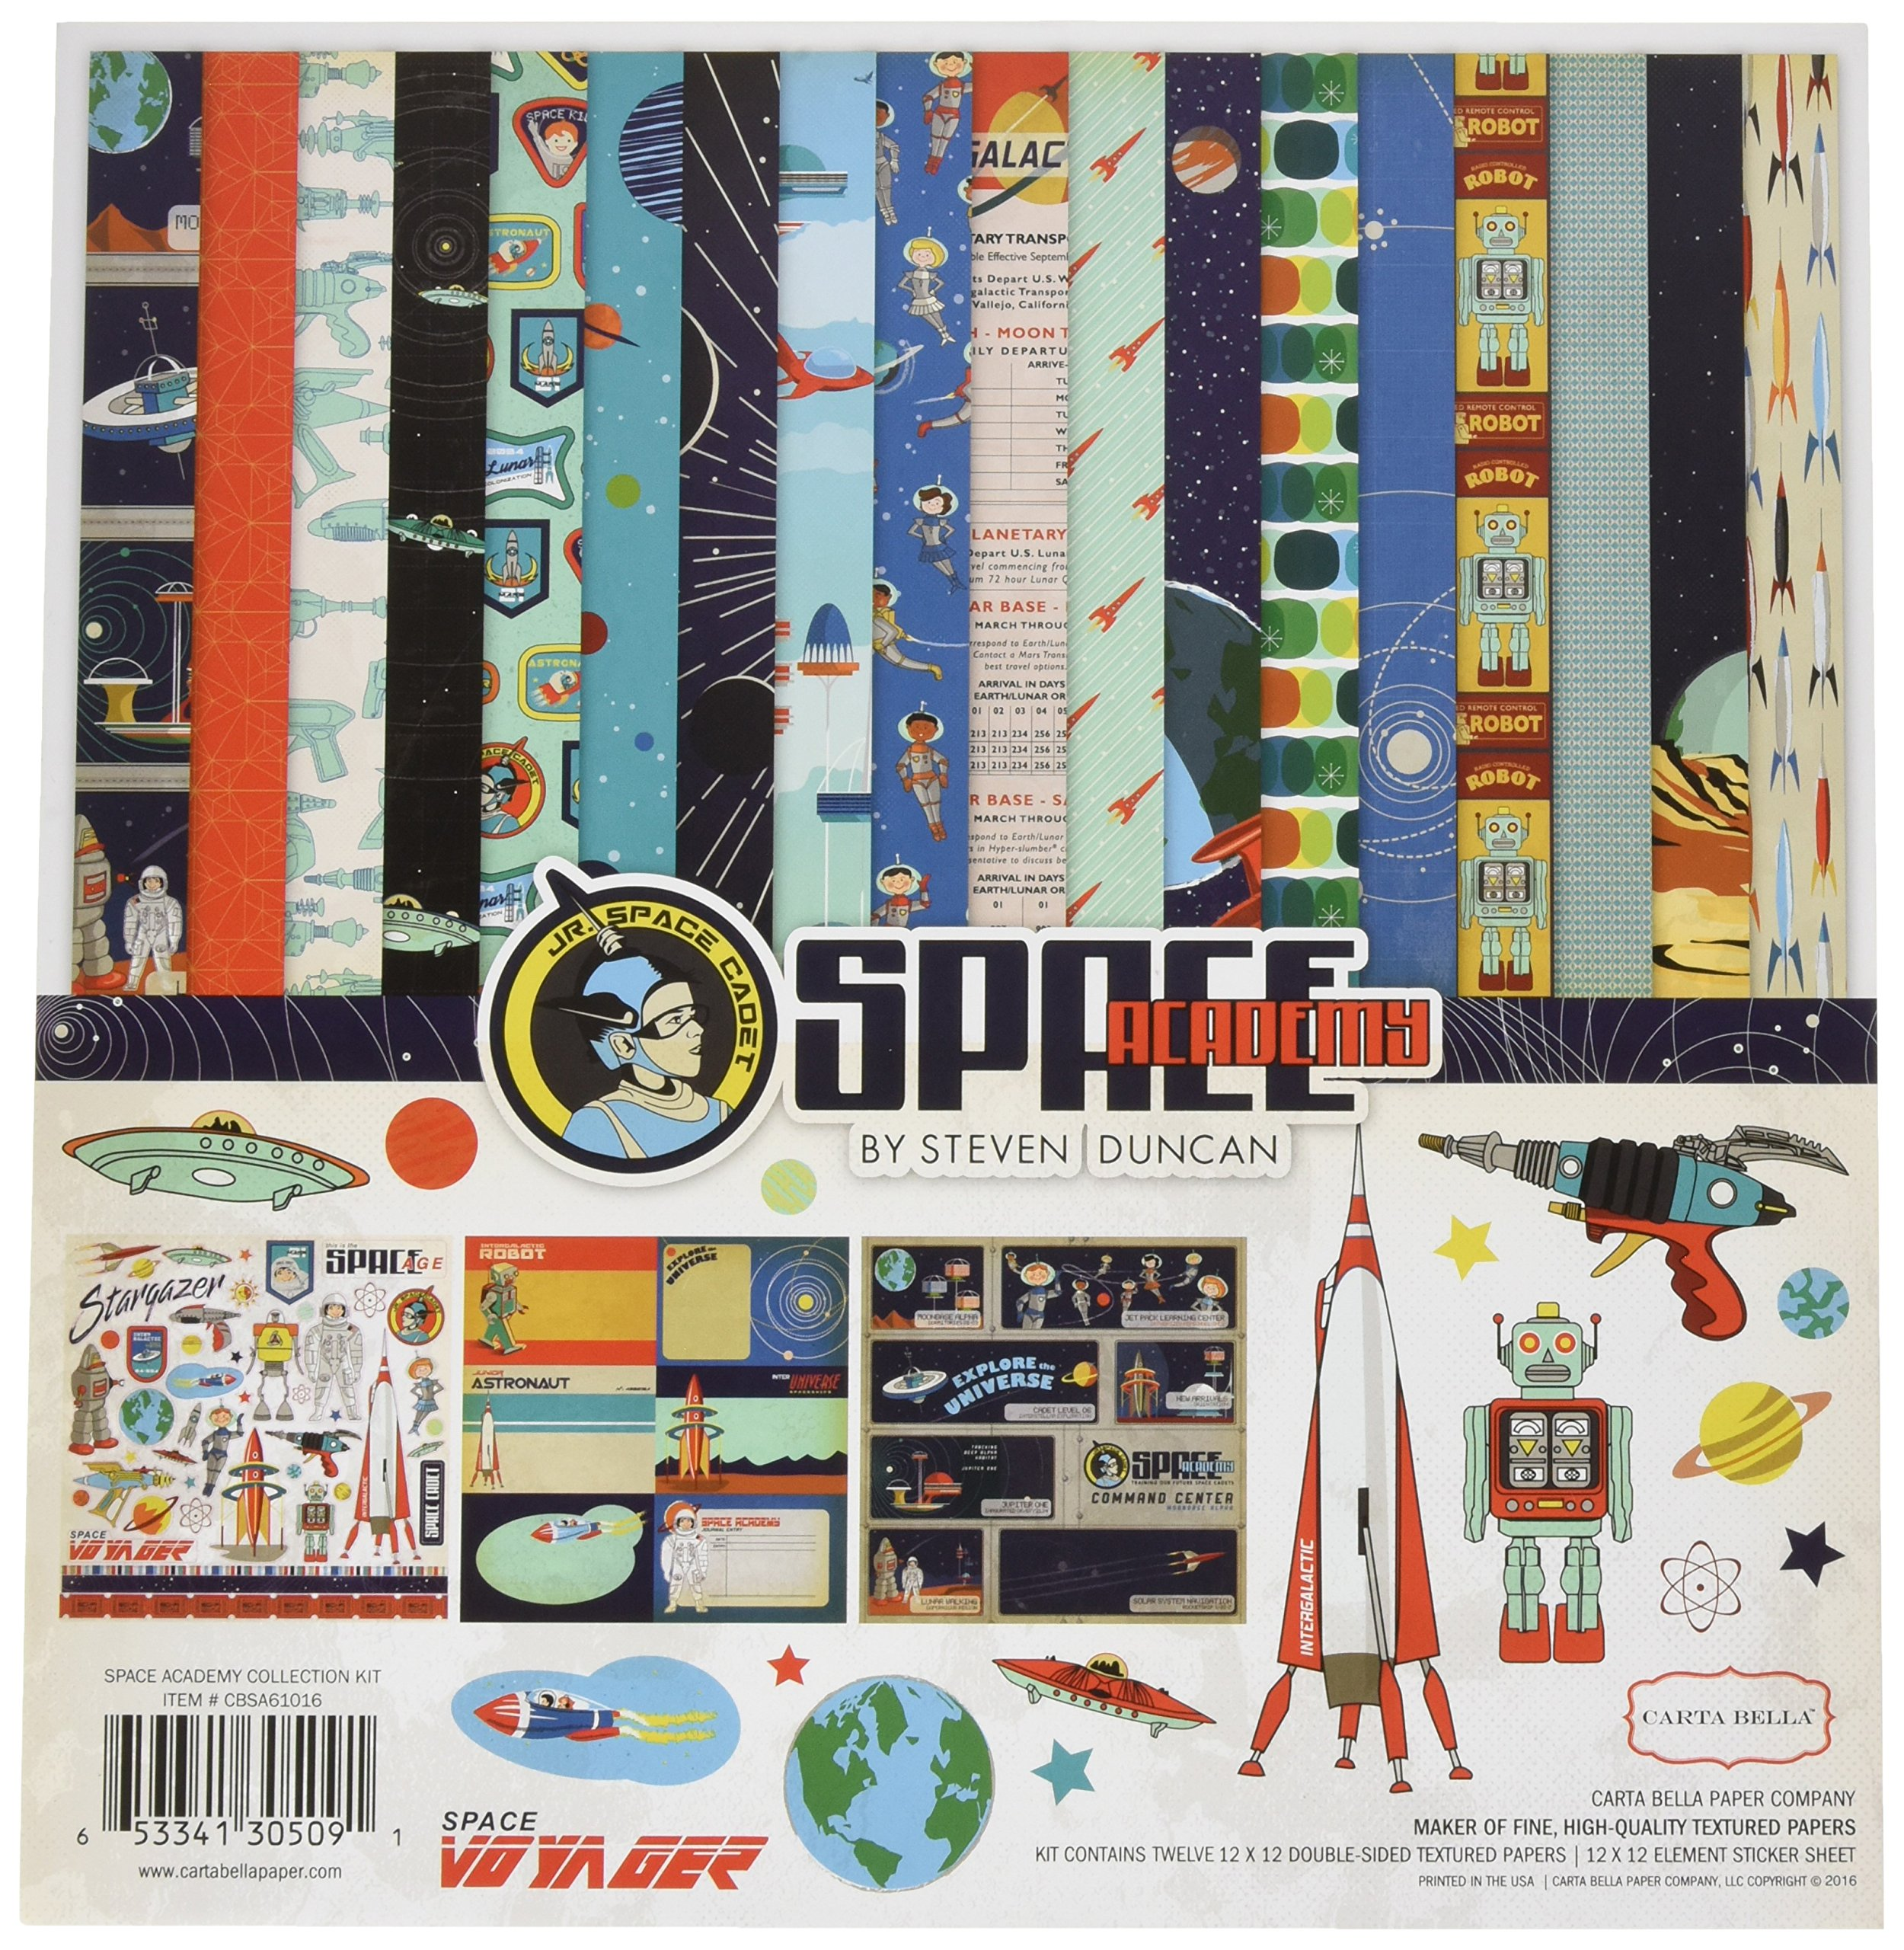 Carta Bella Paper Company Space Academy Collection Kit